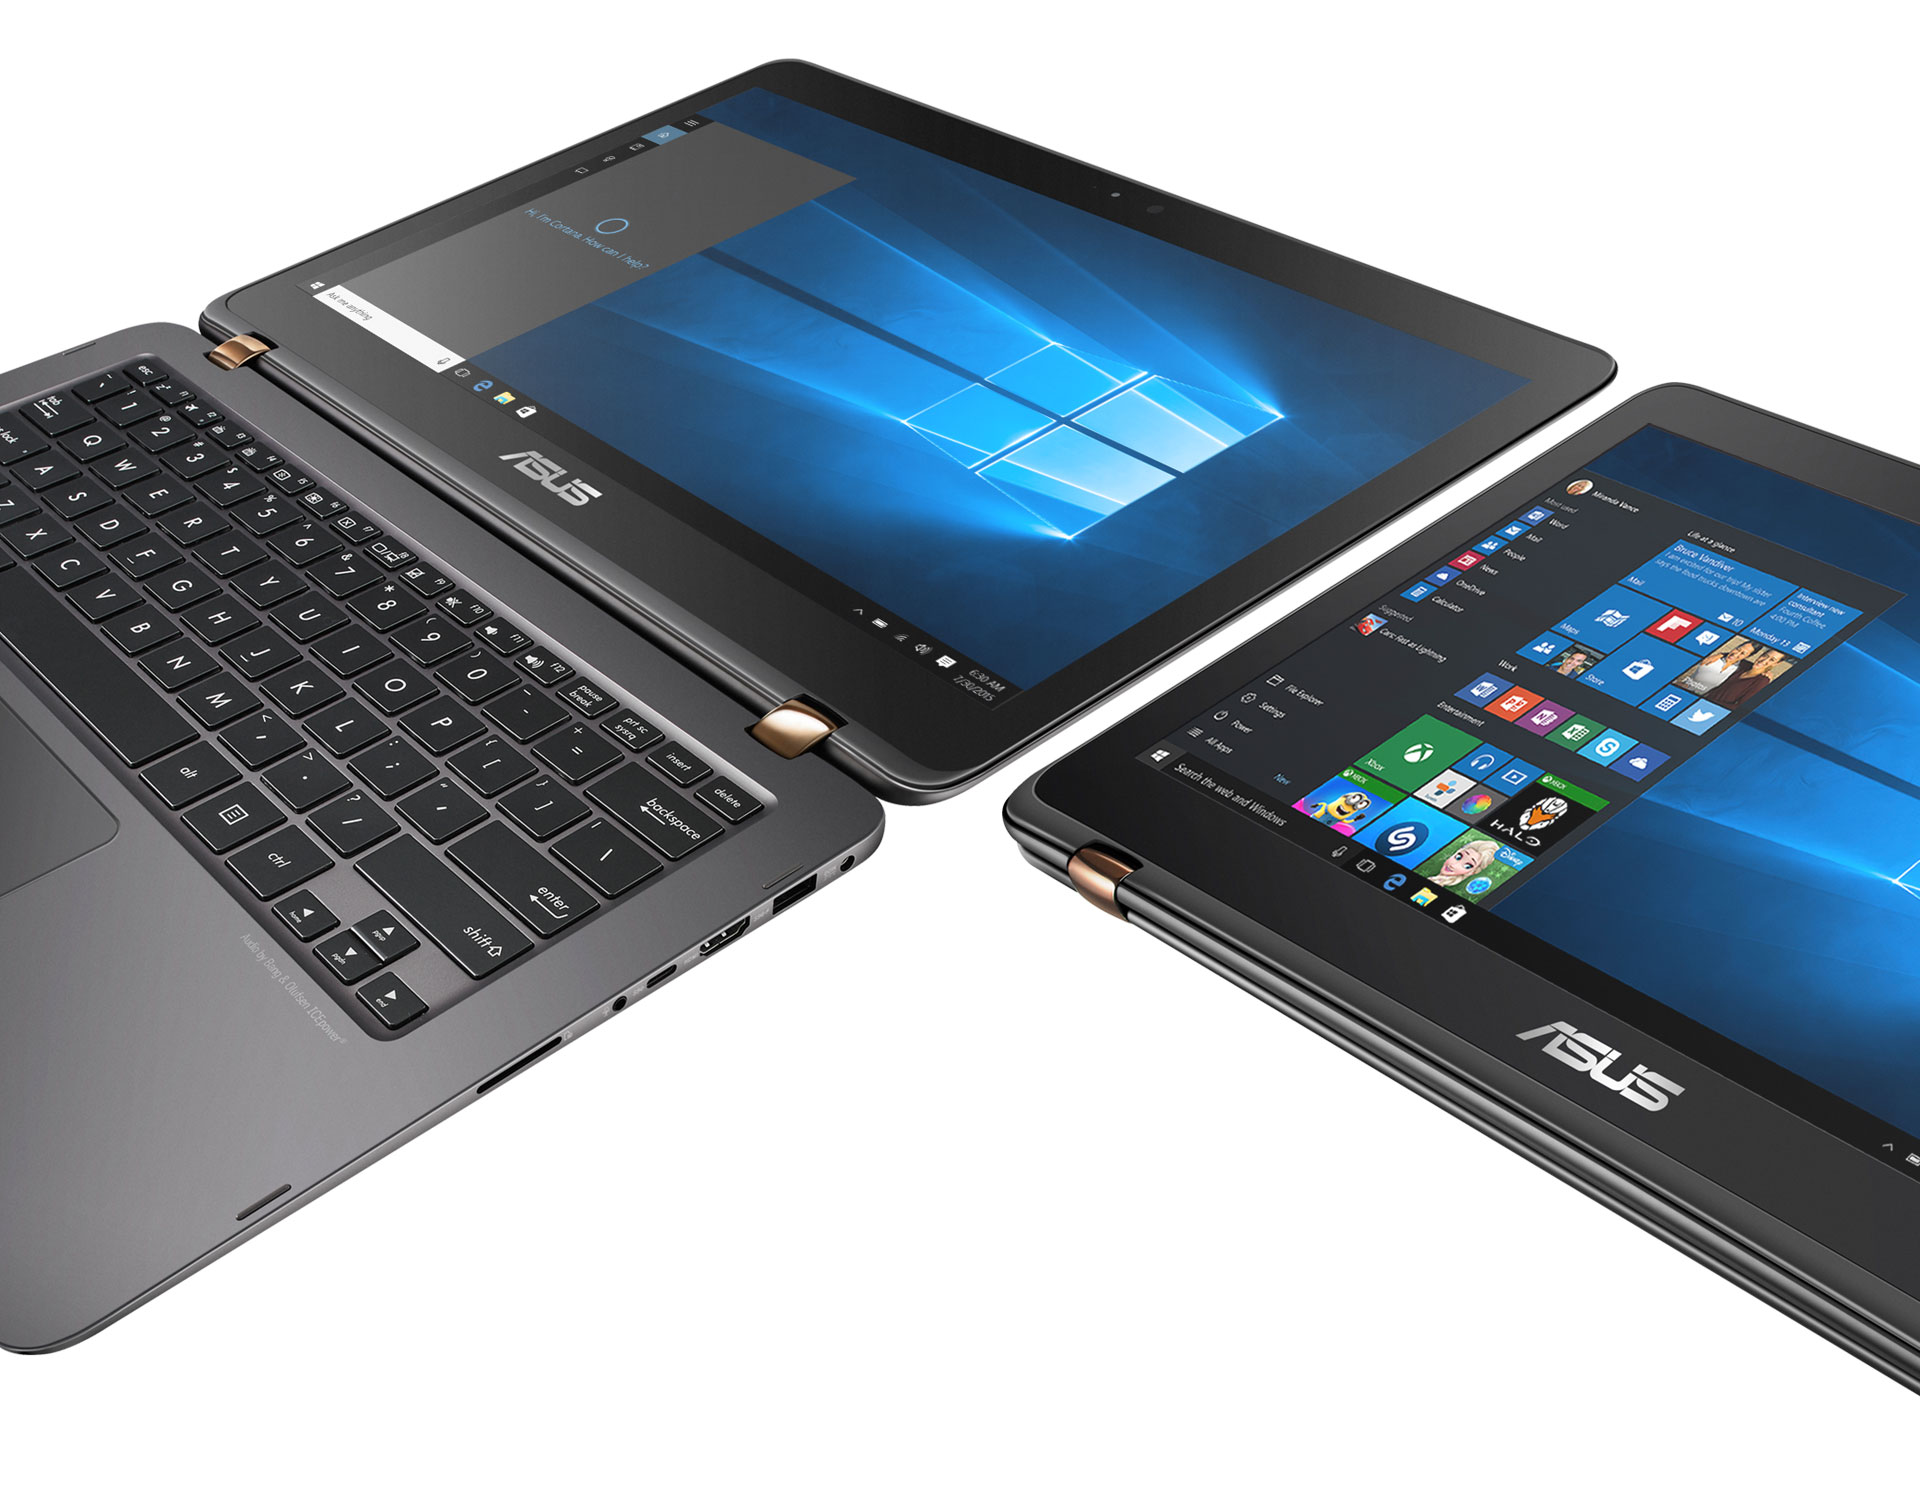 ASUS Zenbook Flip For Higher Mobility And Comfort